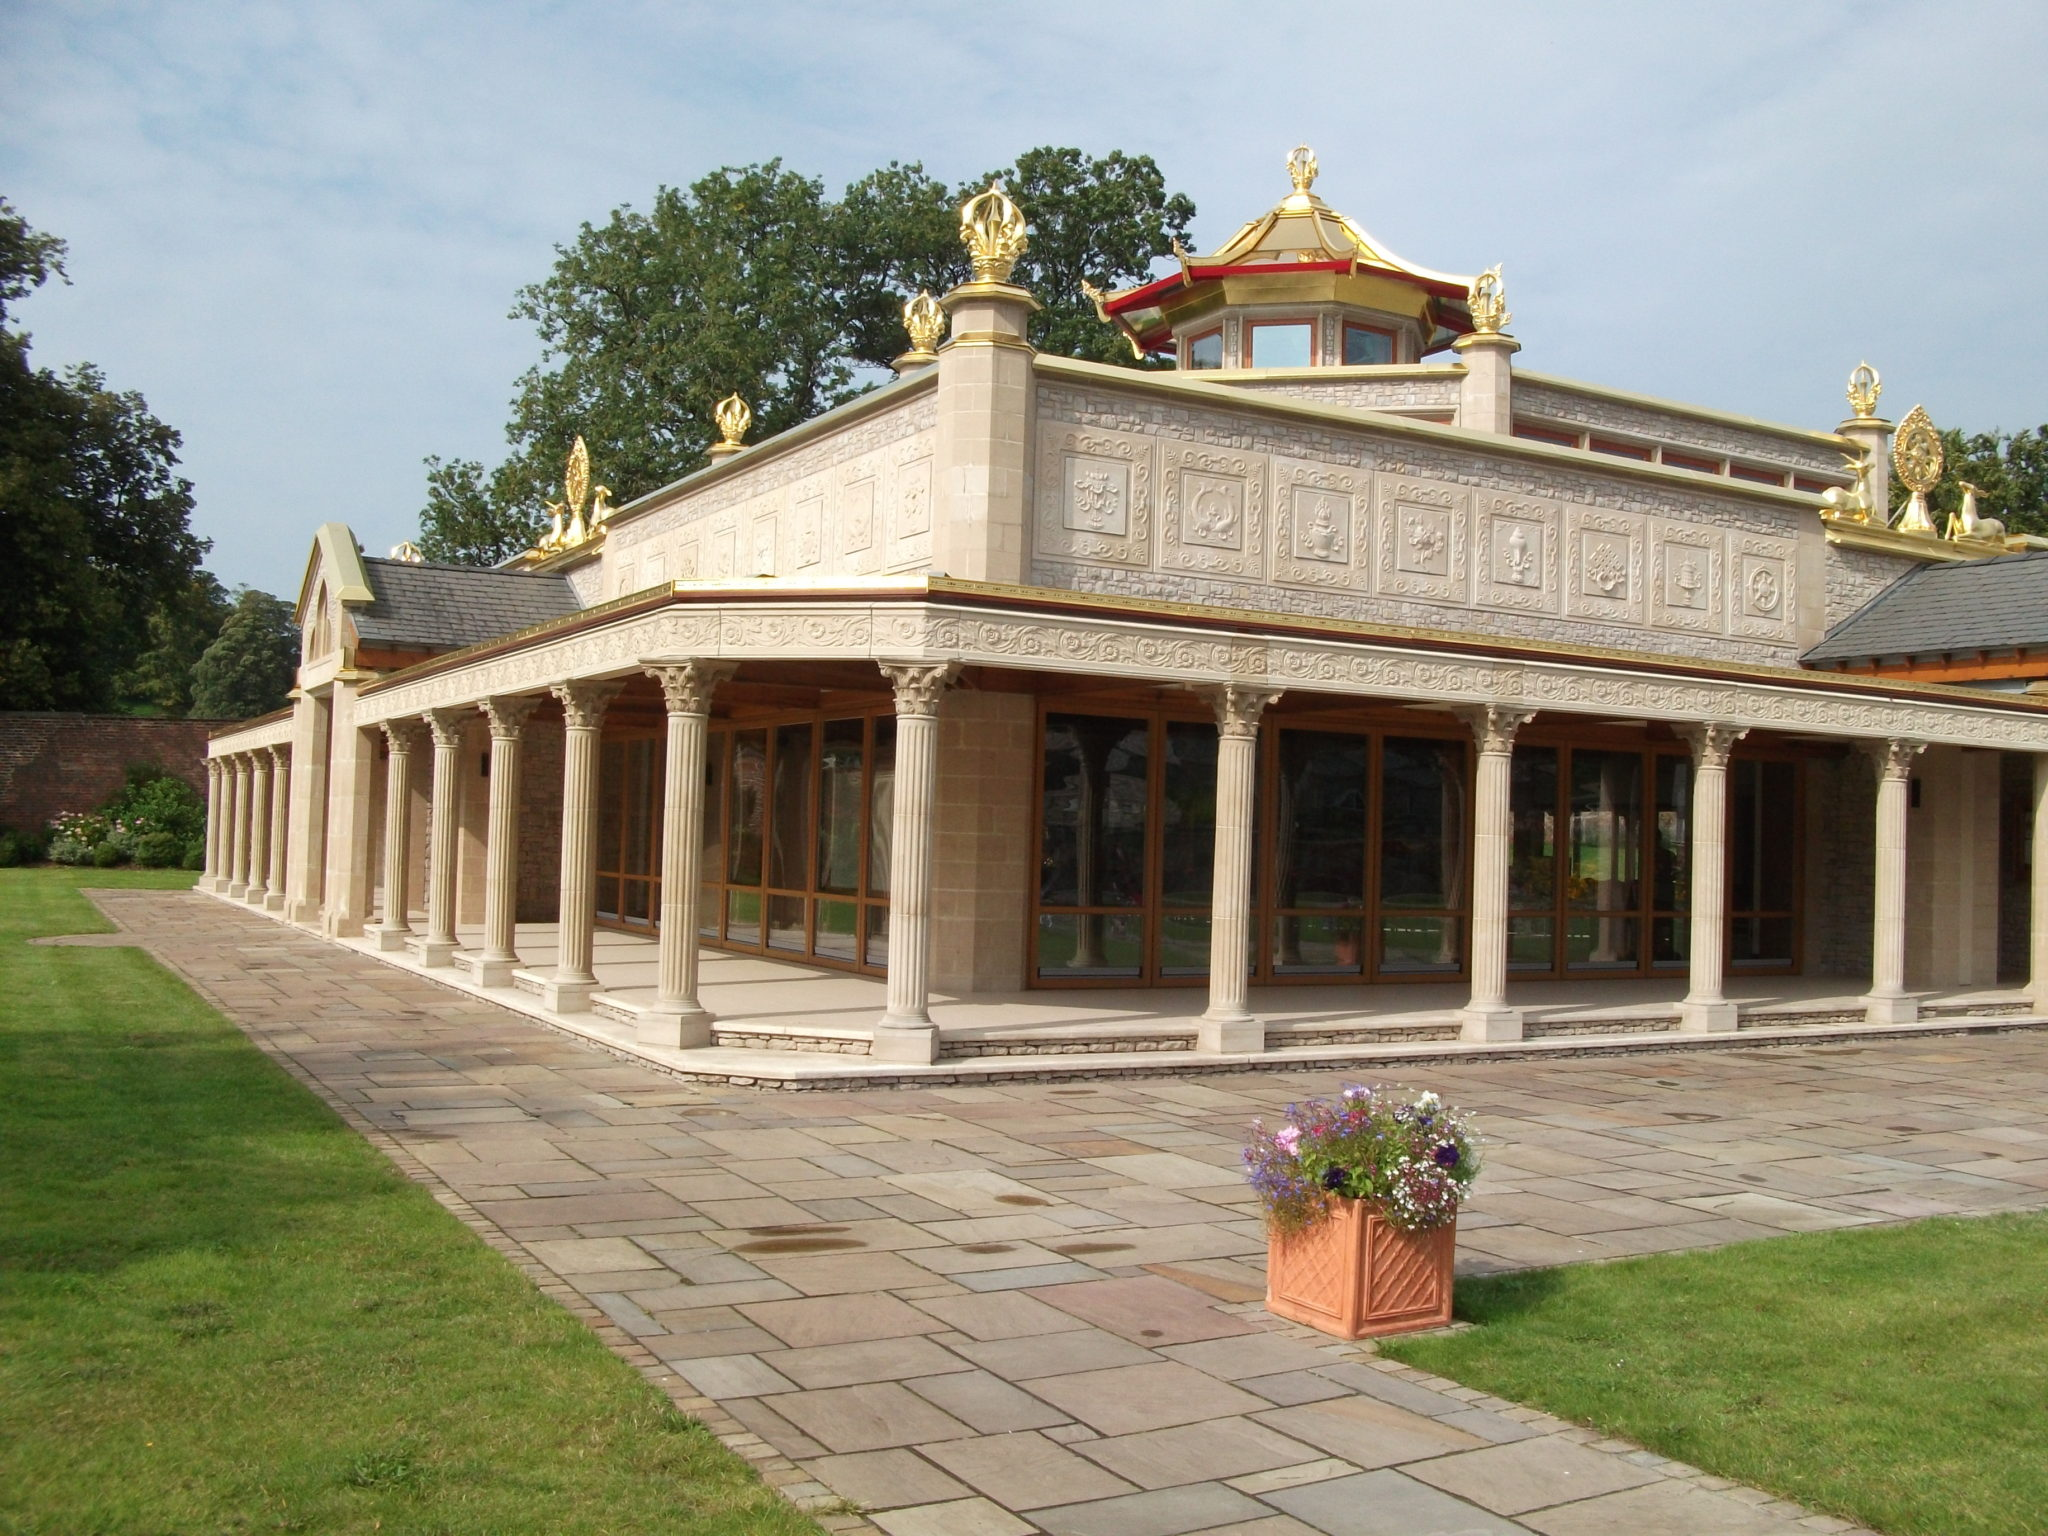 Manjushri KMC – Conishead Priory